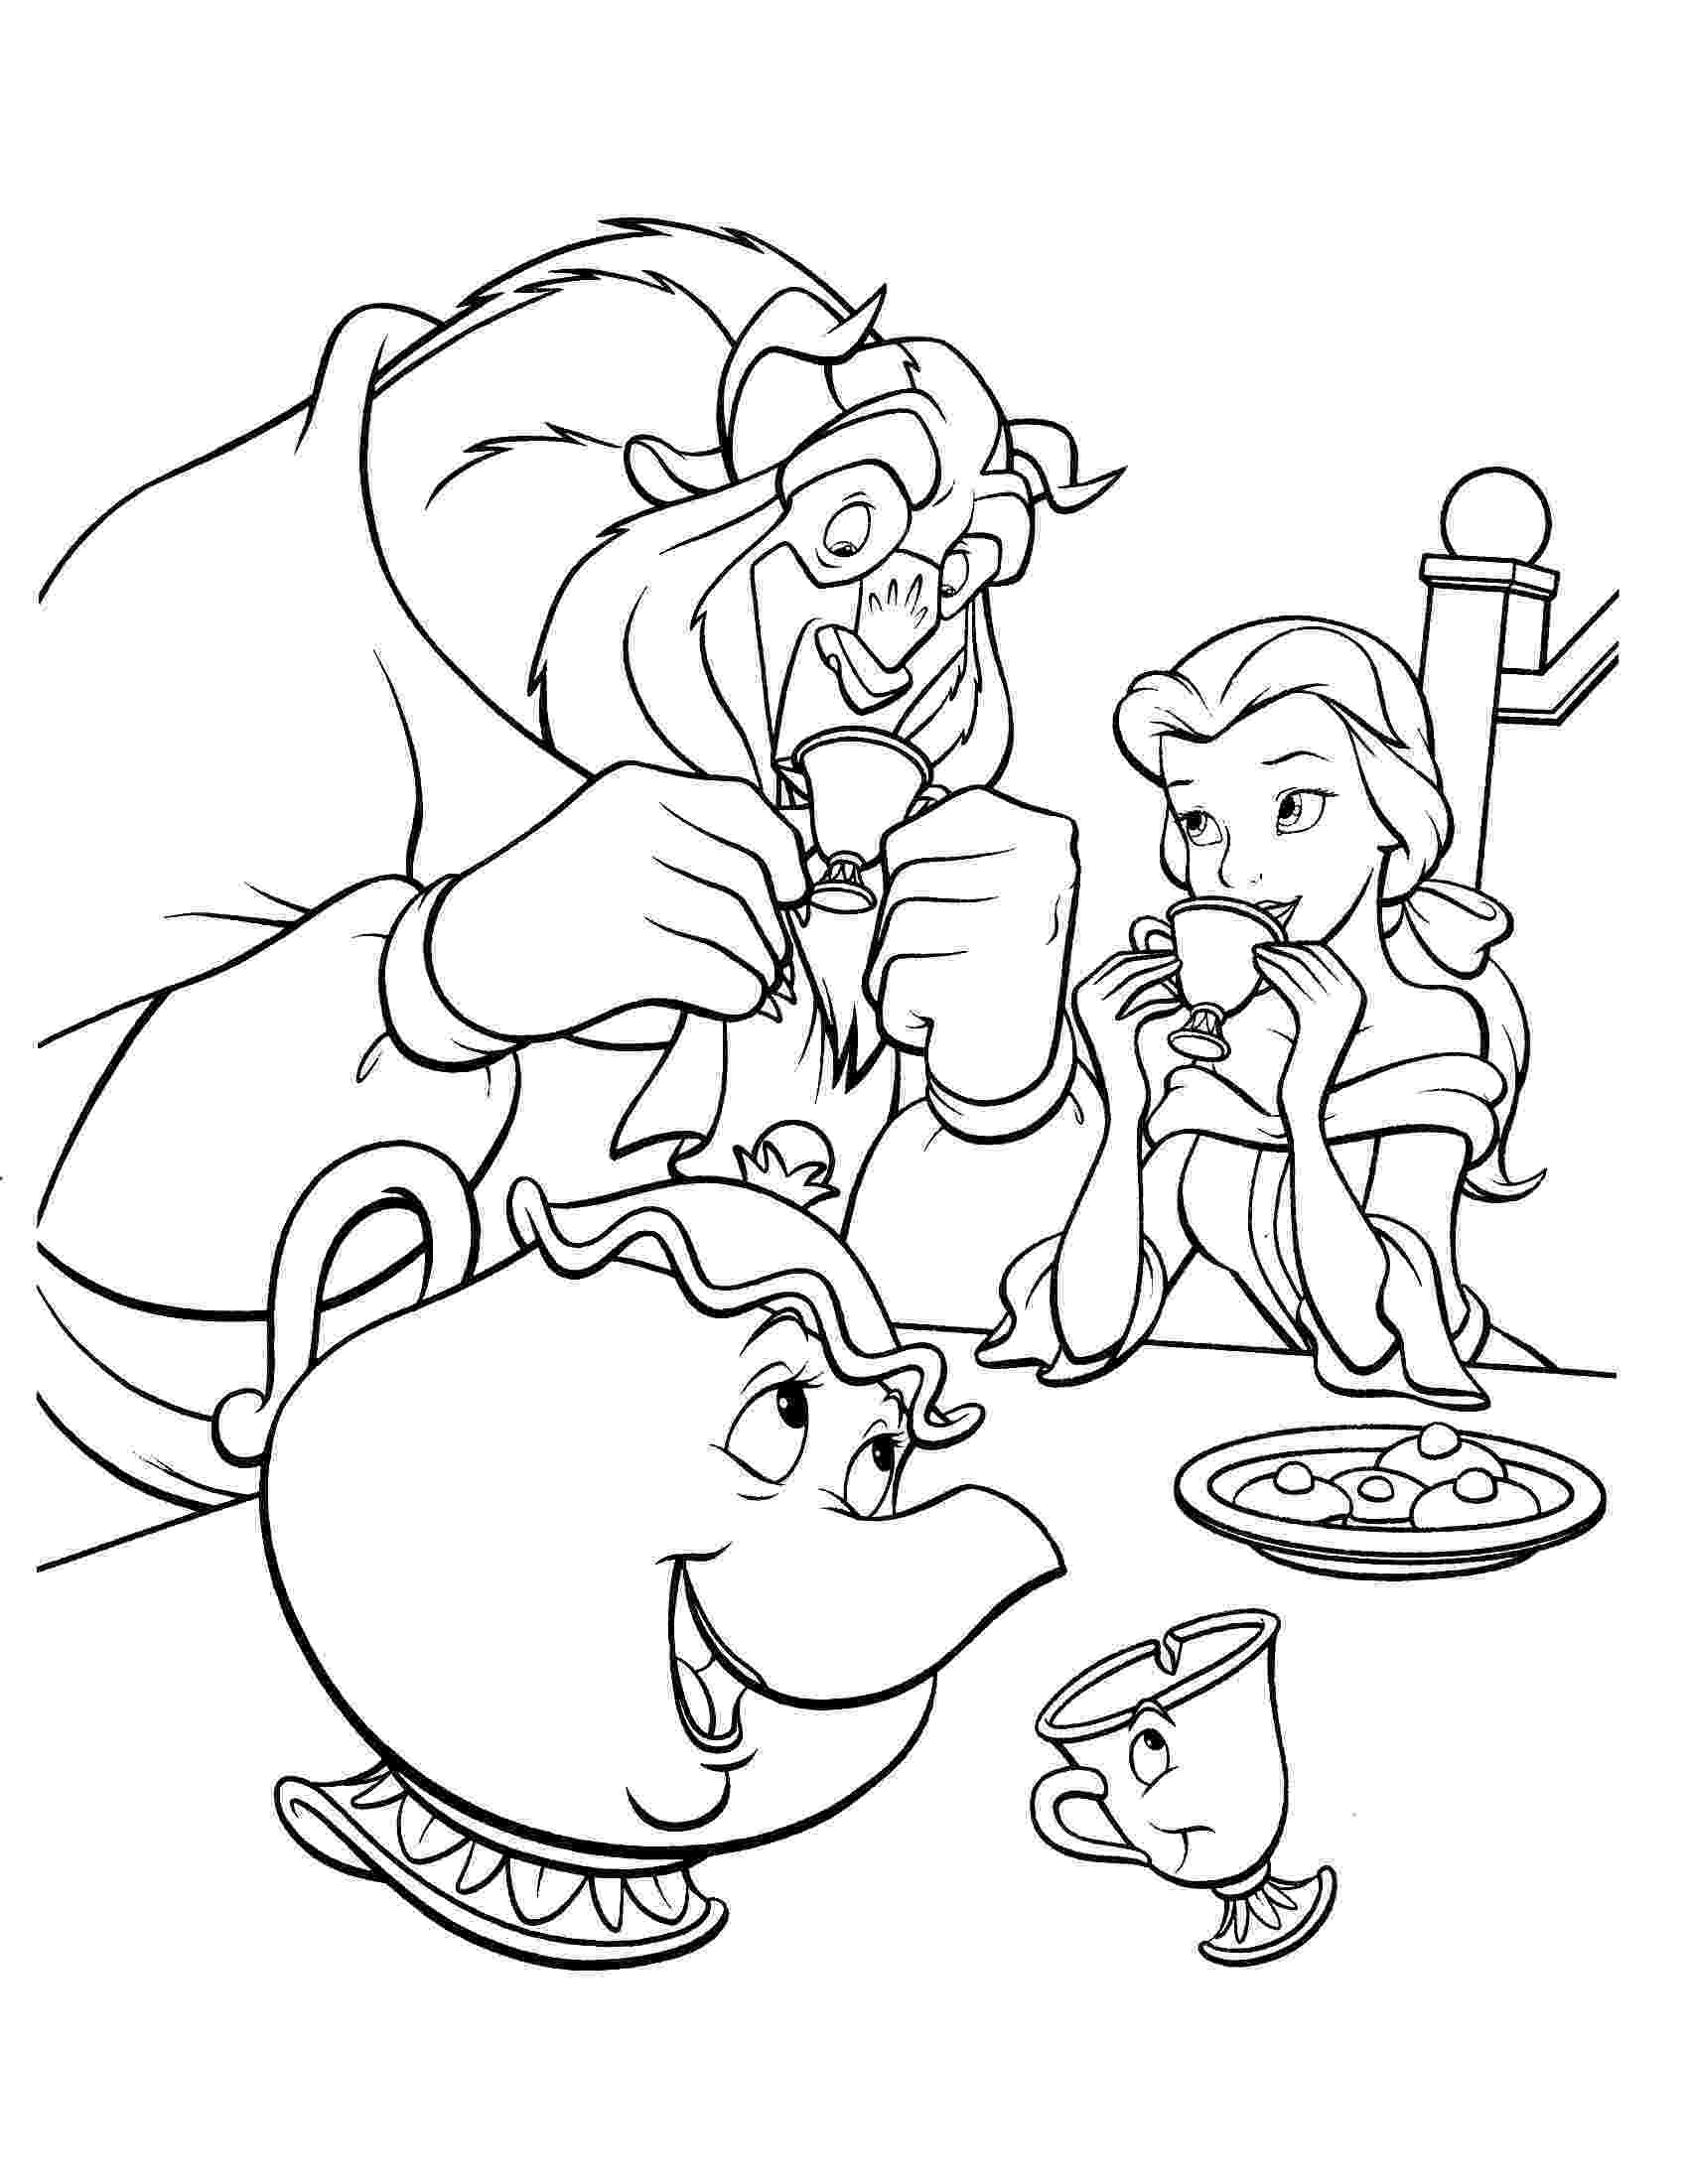 beauty and the beast pictures to colour coloring pages for girls coloring pages for girls to and the beauty pictures beast colour